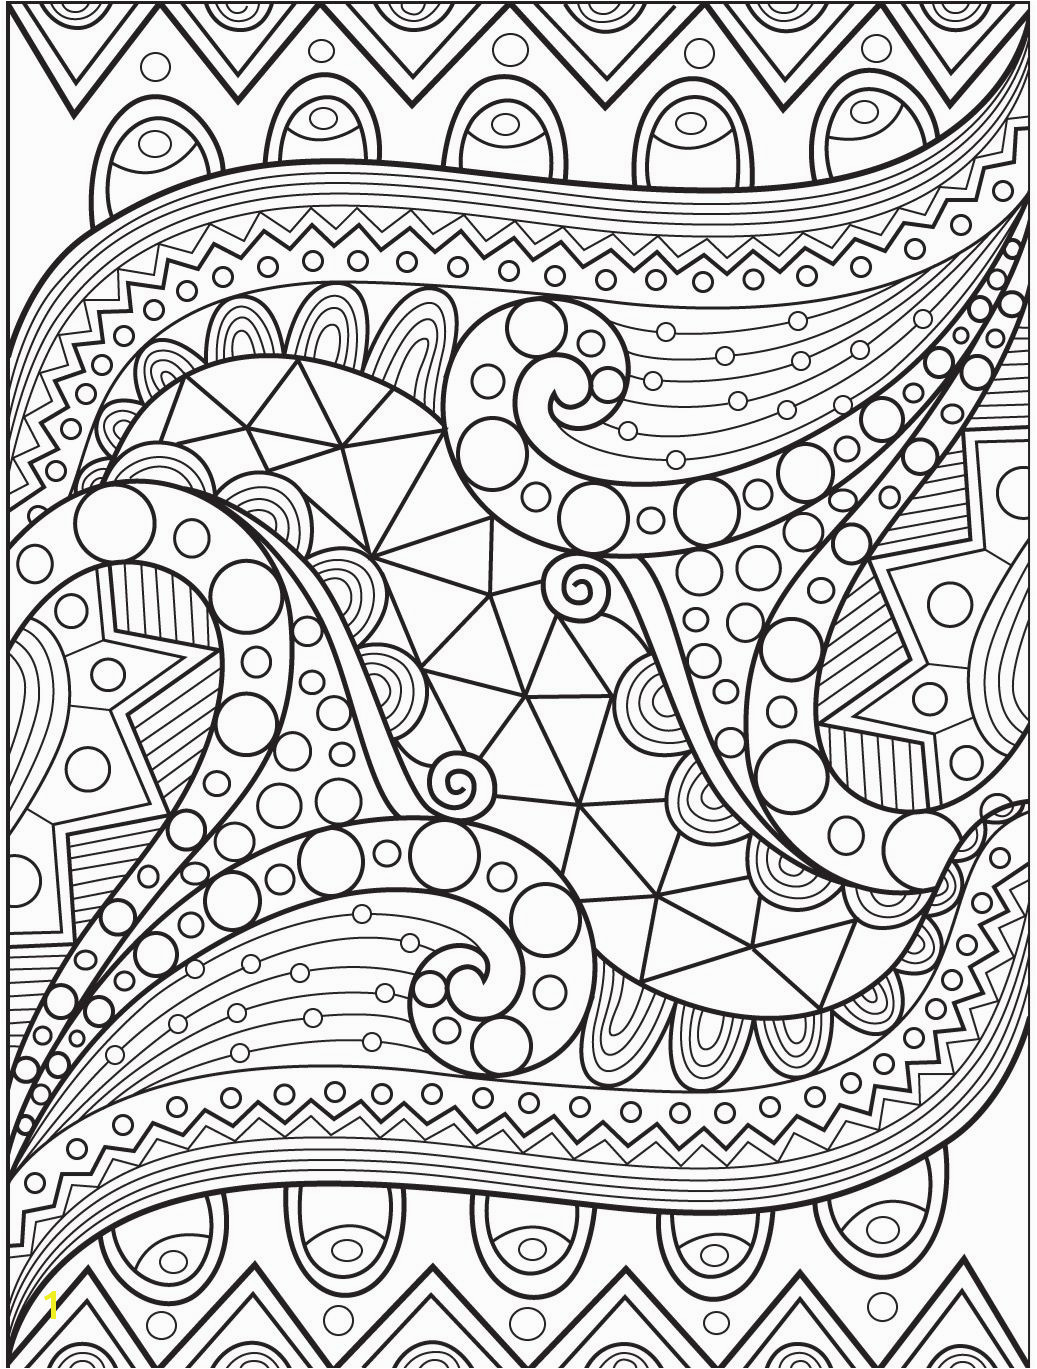 Abstract coloring page on Colorish coloring book app for adults by GoodSoftTech